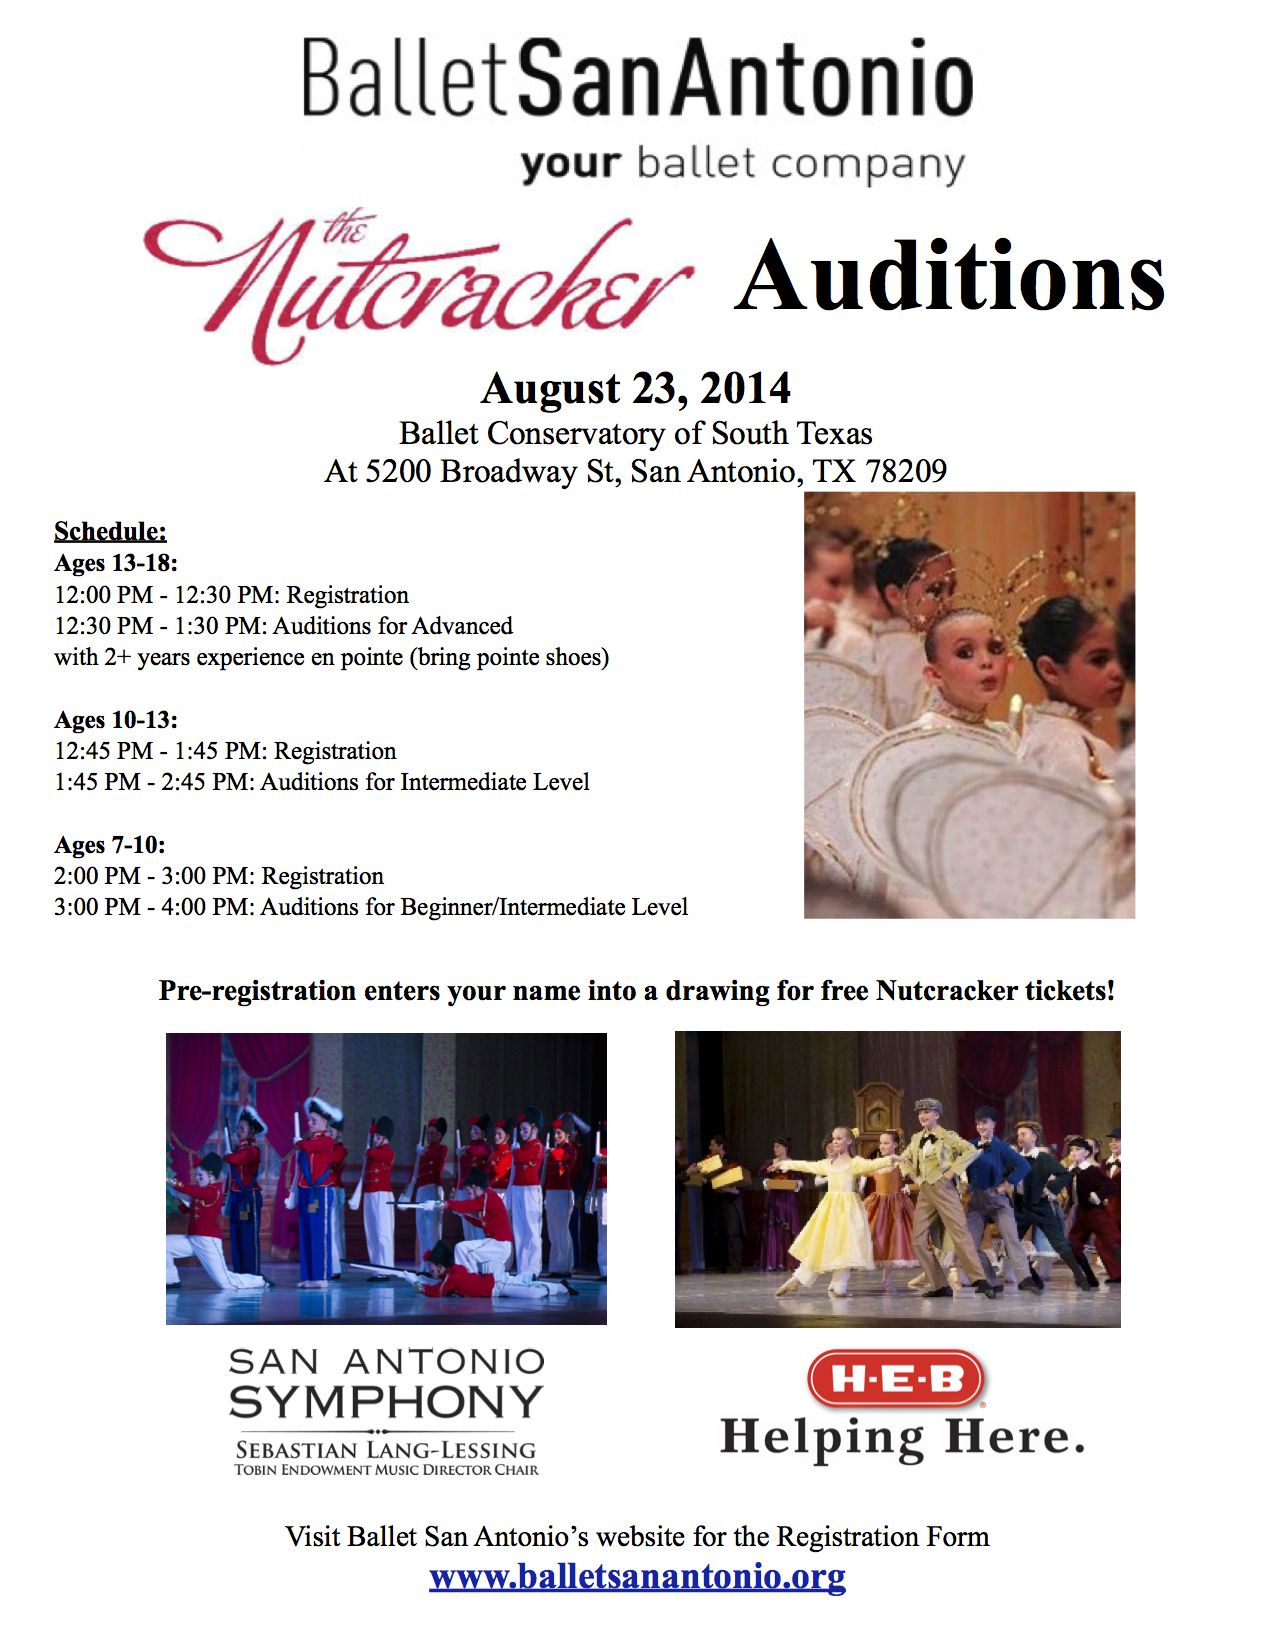 Nutcracker Children's Auditions are August 23! Pre-registering enters your name in a drawing for free Nutcracker tickets! Download the registration form here: http://balletsanantonio.org/performances/the-nutcracker-2/childrens-audition/